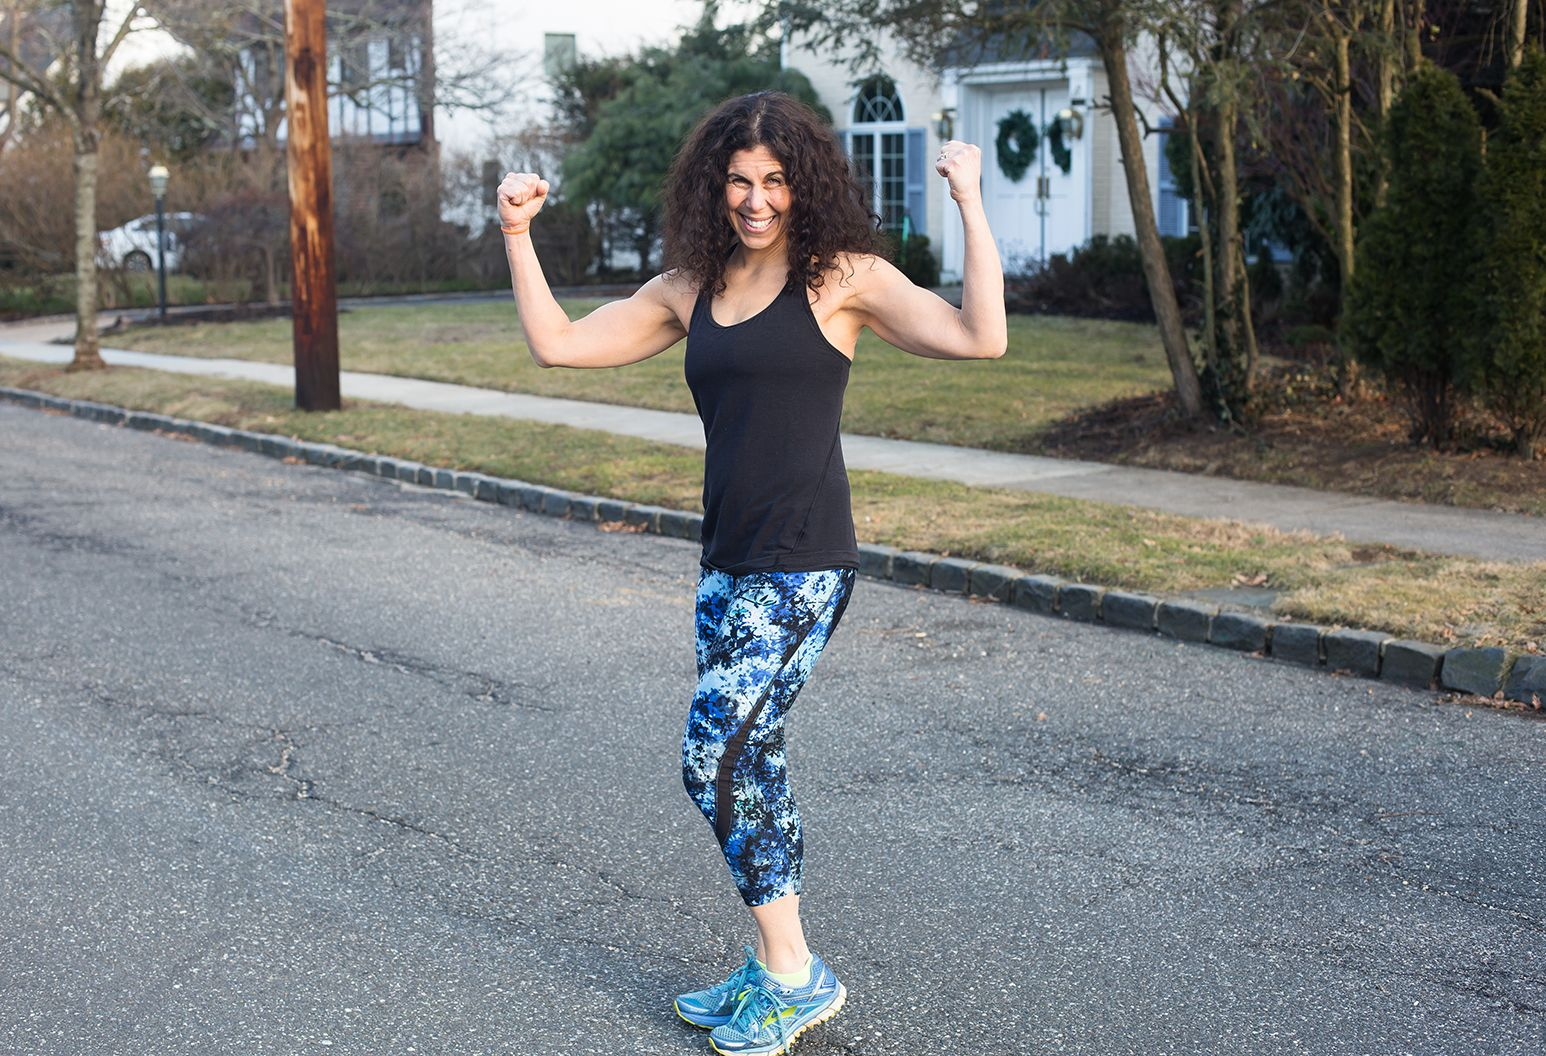 A 40 year-old woman with curly black hair wears a black tank top and black, blue and white leggins with blue sneakers. She stands in the street and poses, making muscles with her arms.